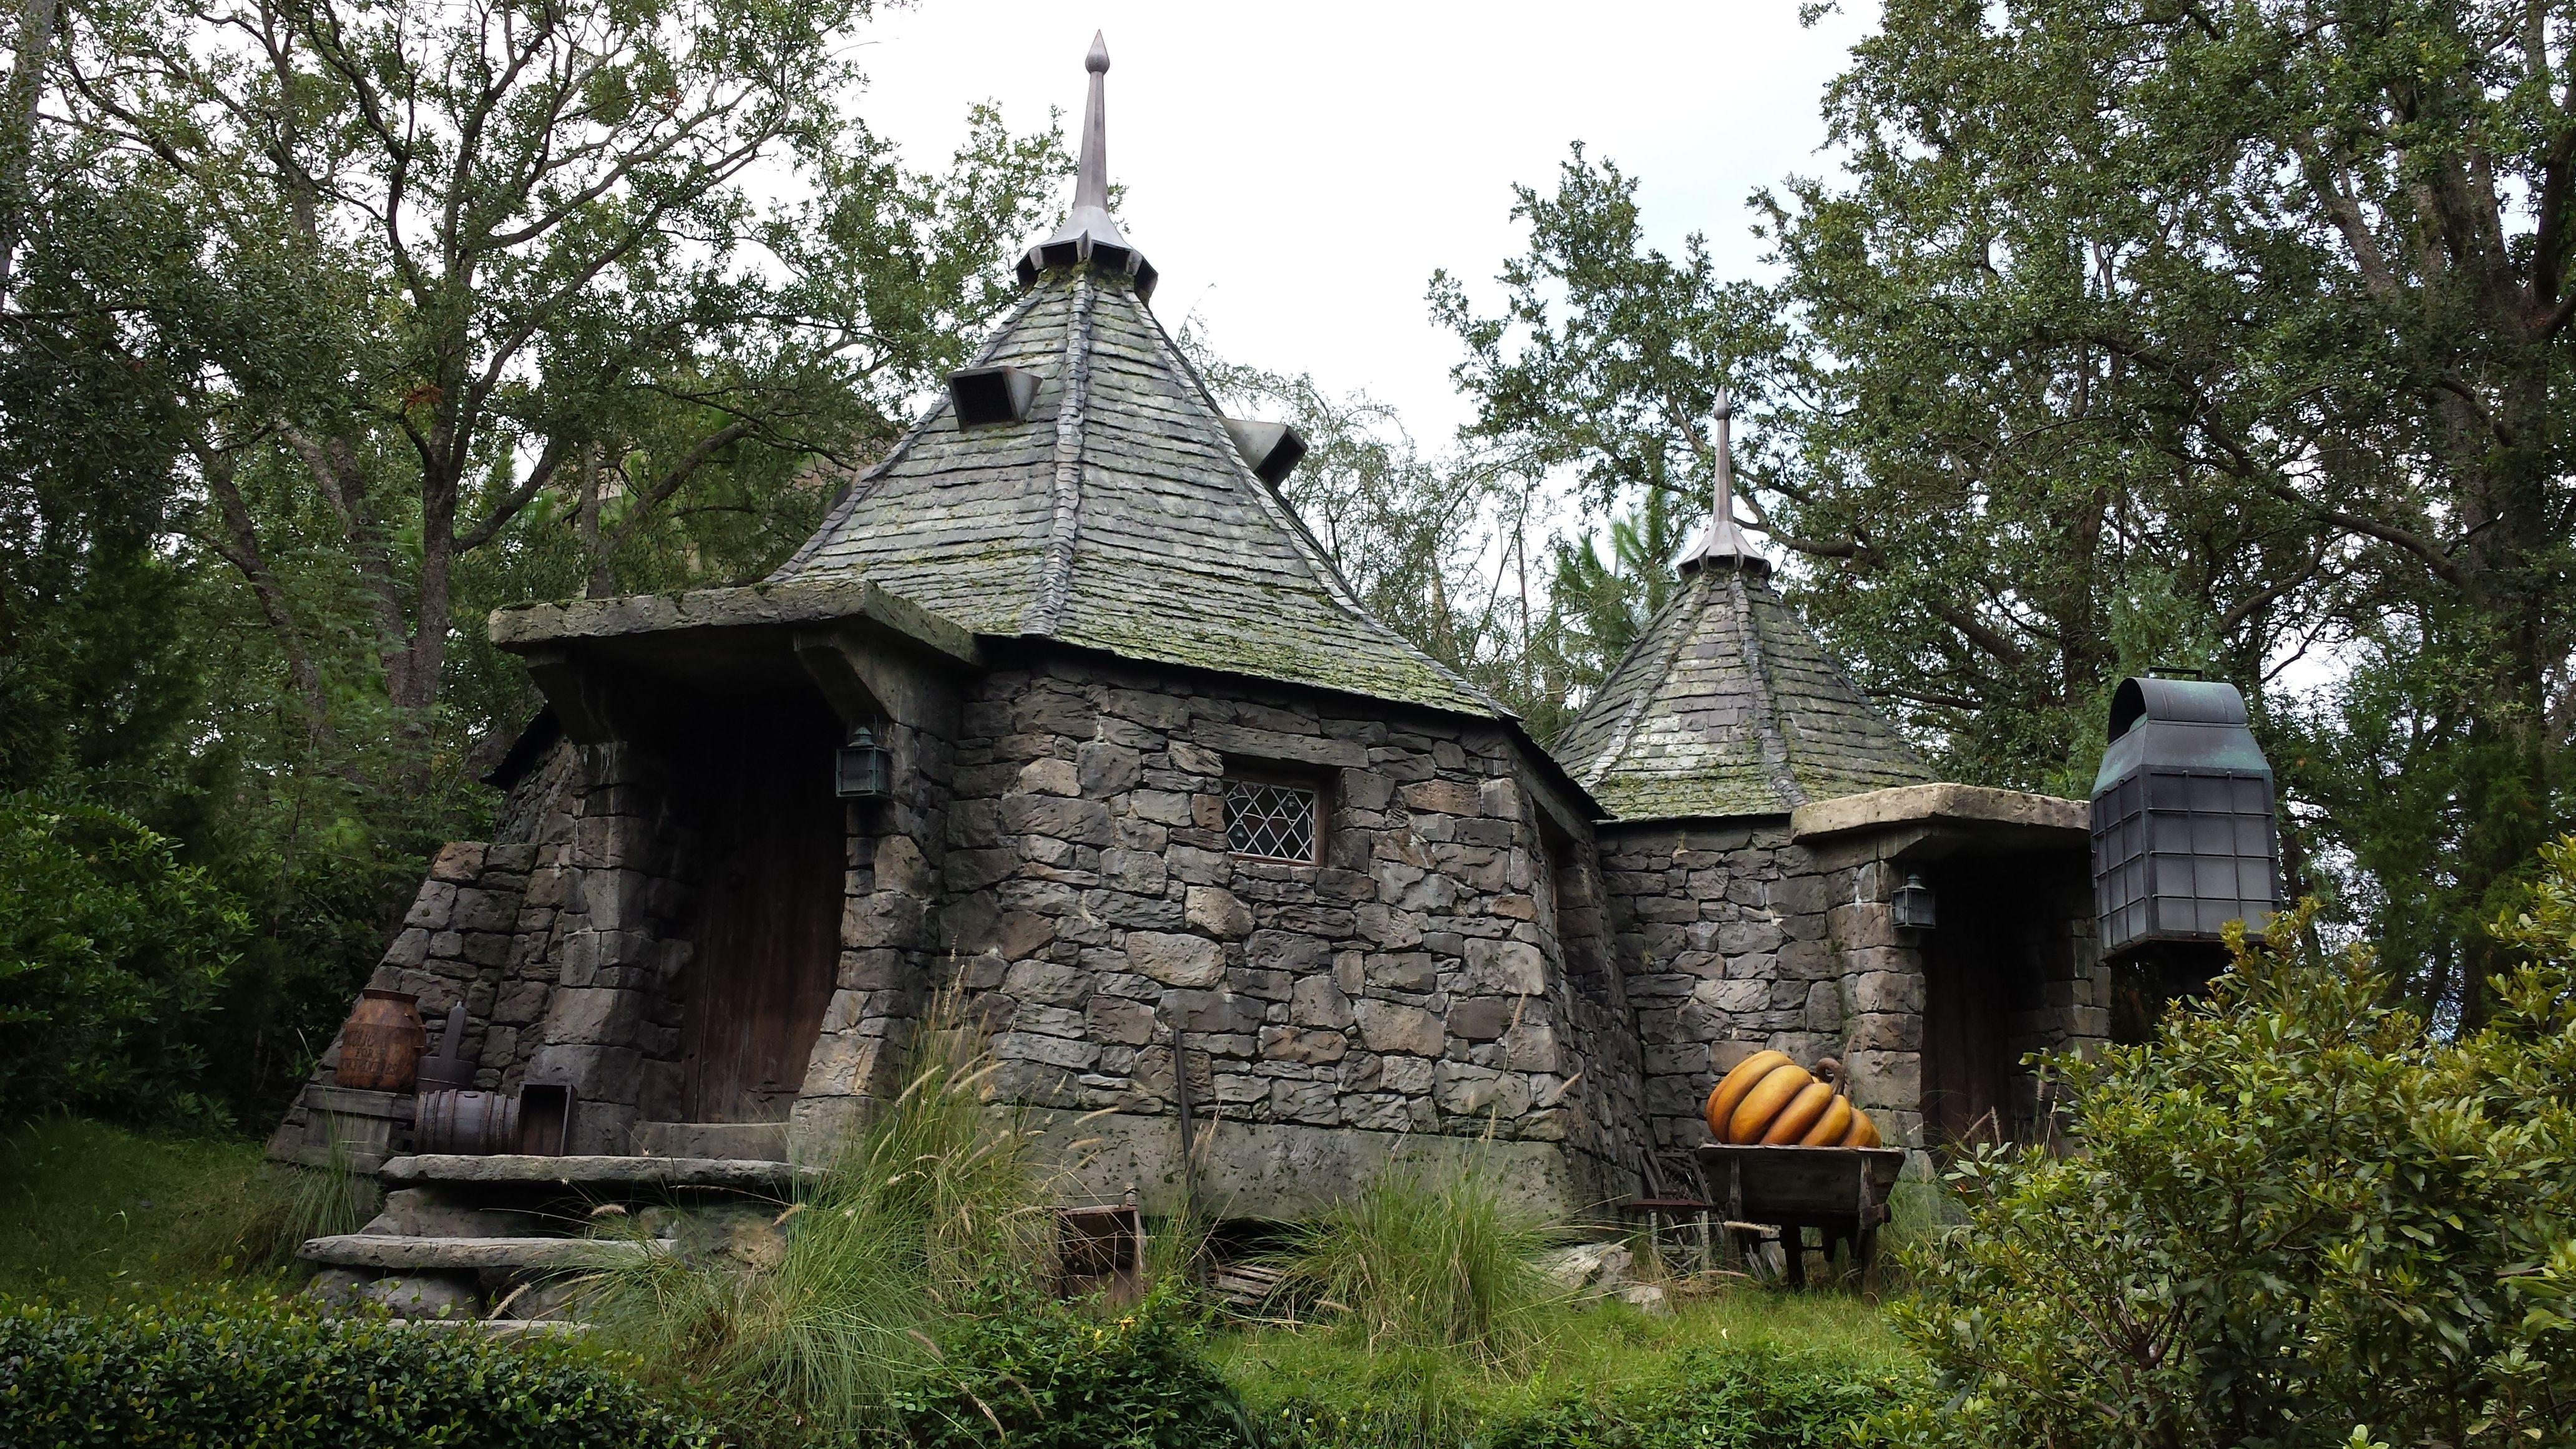 Hagrid 39 s house rubeus hegrid harry potter pinterest What house was hagrid in